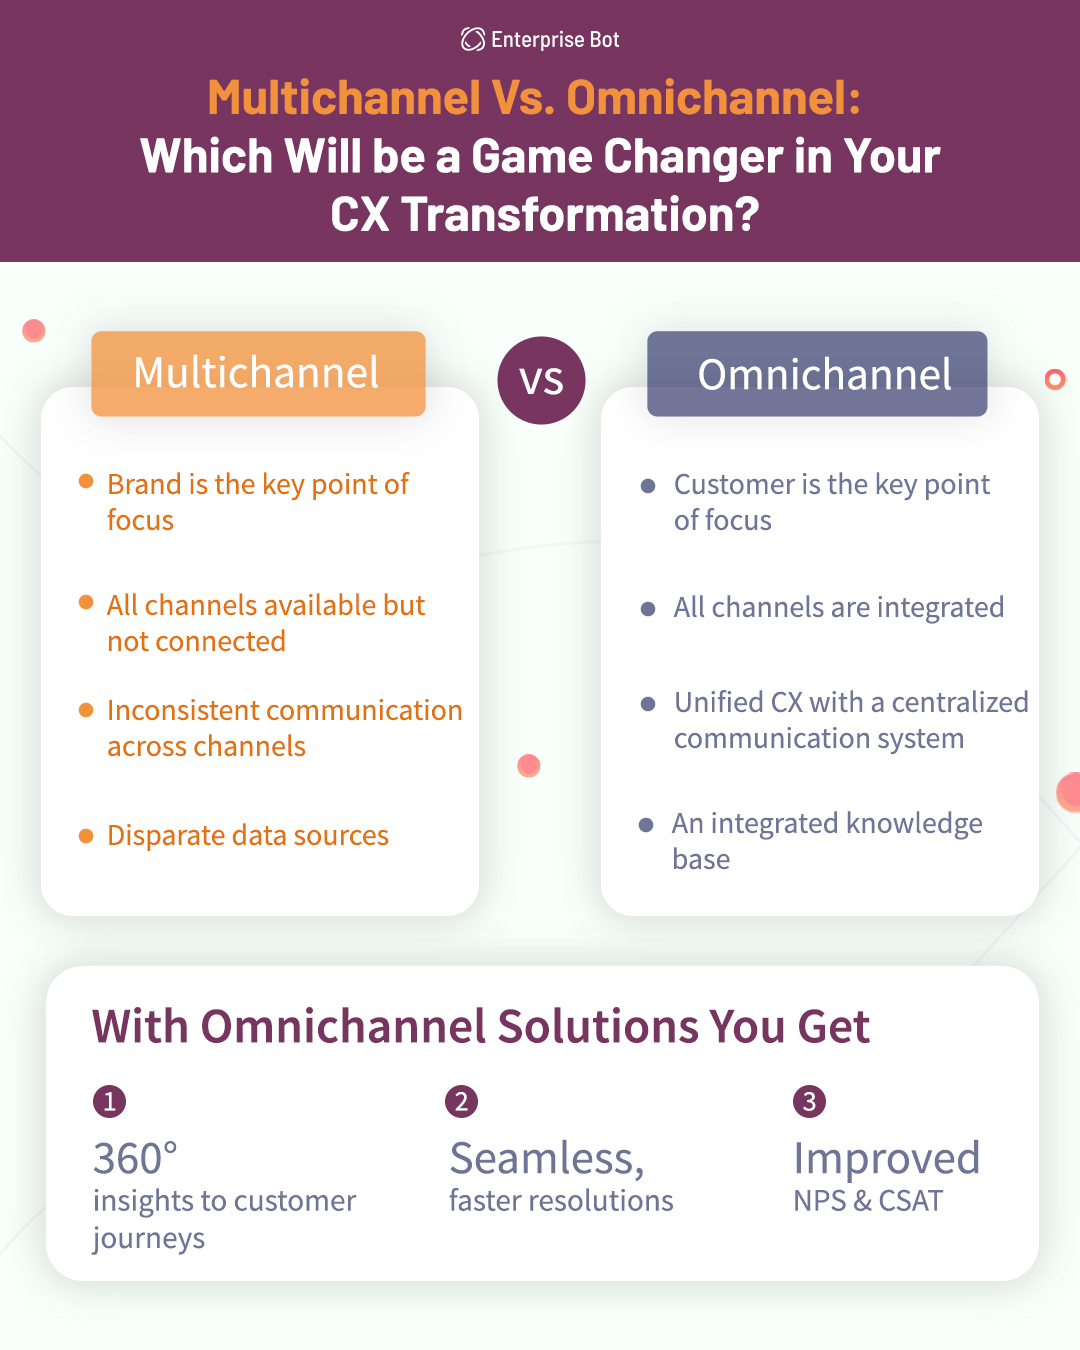 Multichannel Vs, Omnichannel: Which will be a Game Changer in Your CX Transformation?